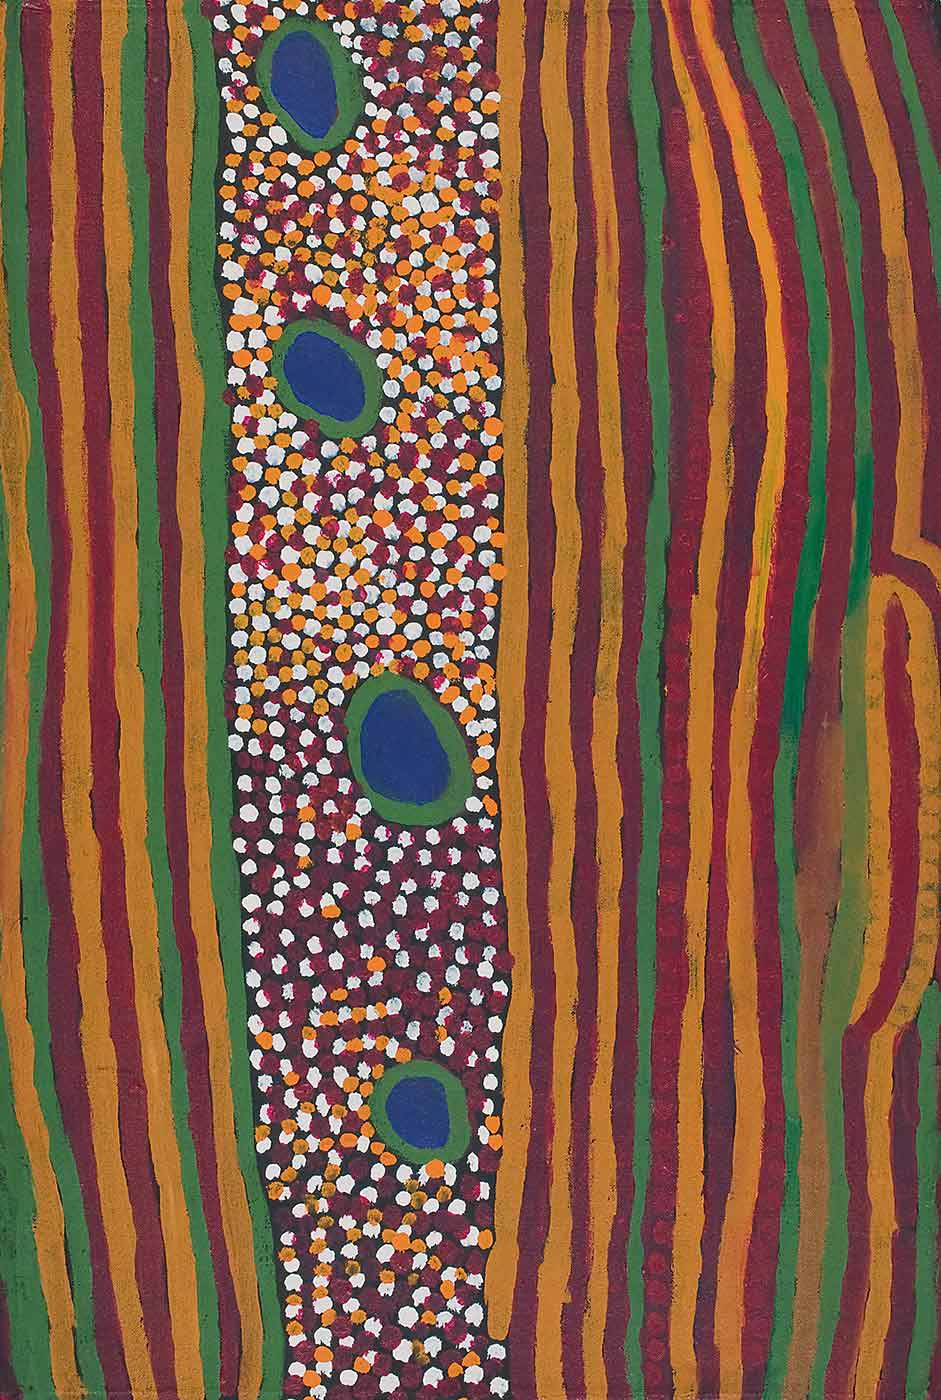 A painting on brown linen with vertical stripes of yellow, brown, burgundy and green, flanking a central section of four blue and green circles in a vertical line on a background of white, burgundy, and orange dots. - click to view larger image